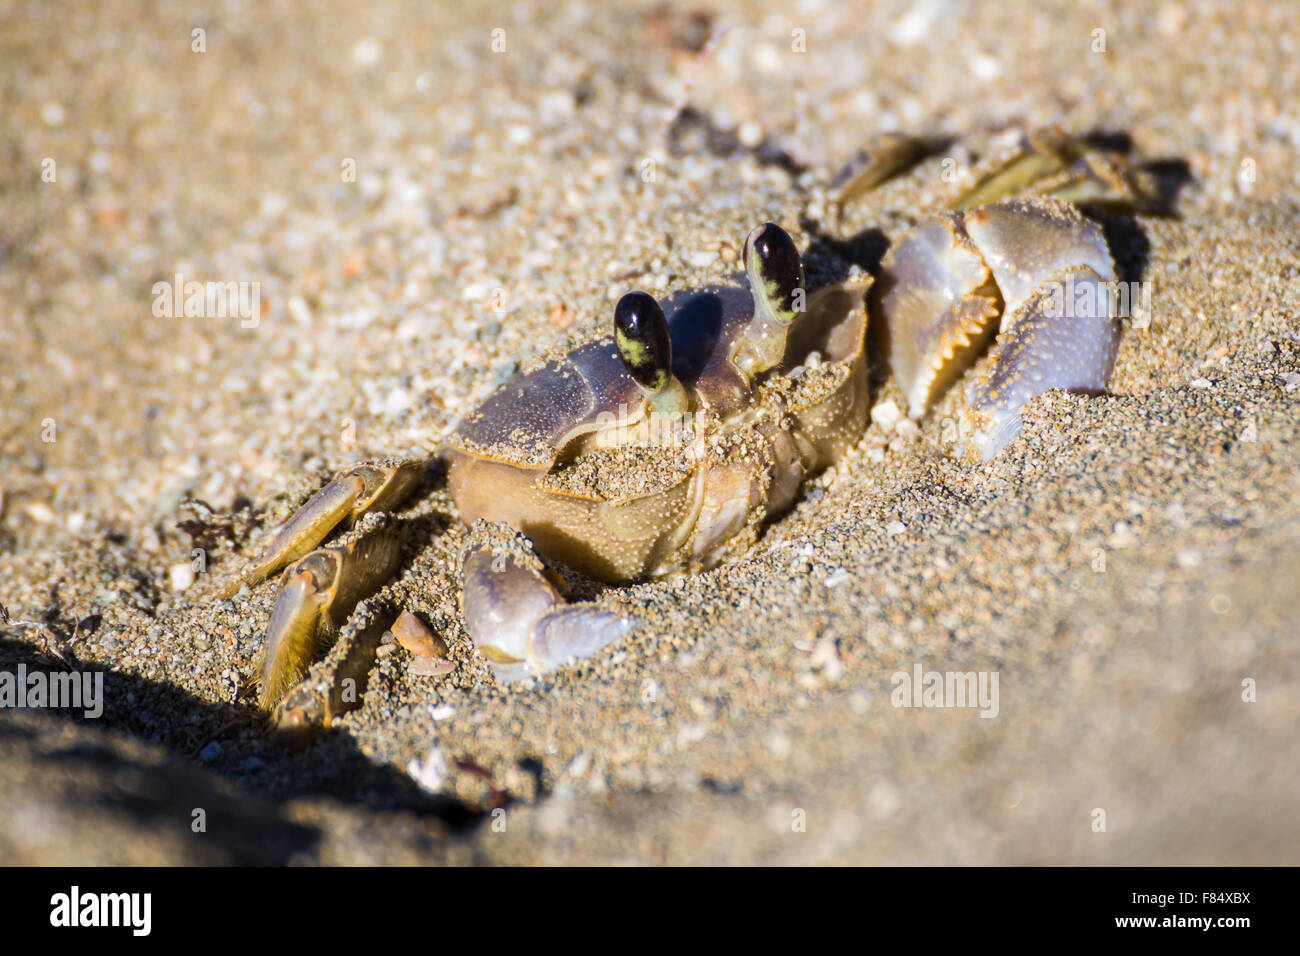 A fully grown sand crab pauses in the sand as he waits for a threat to disappear. - Stock Image